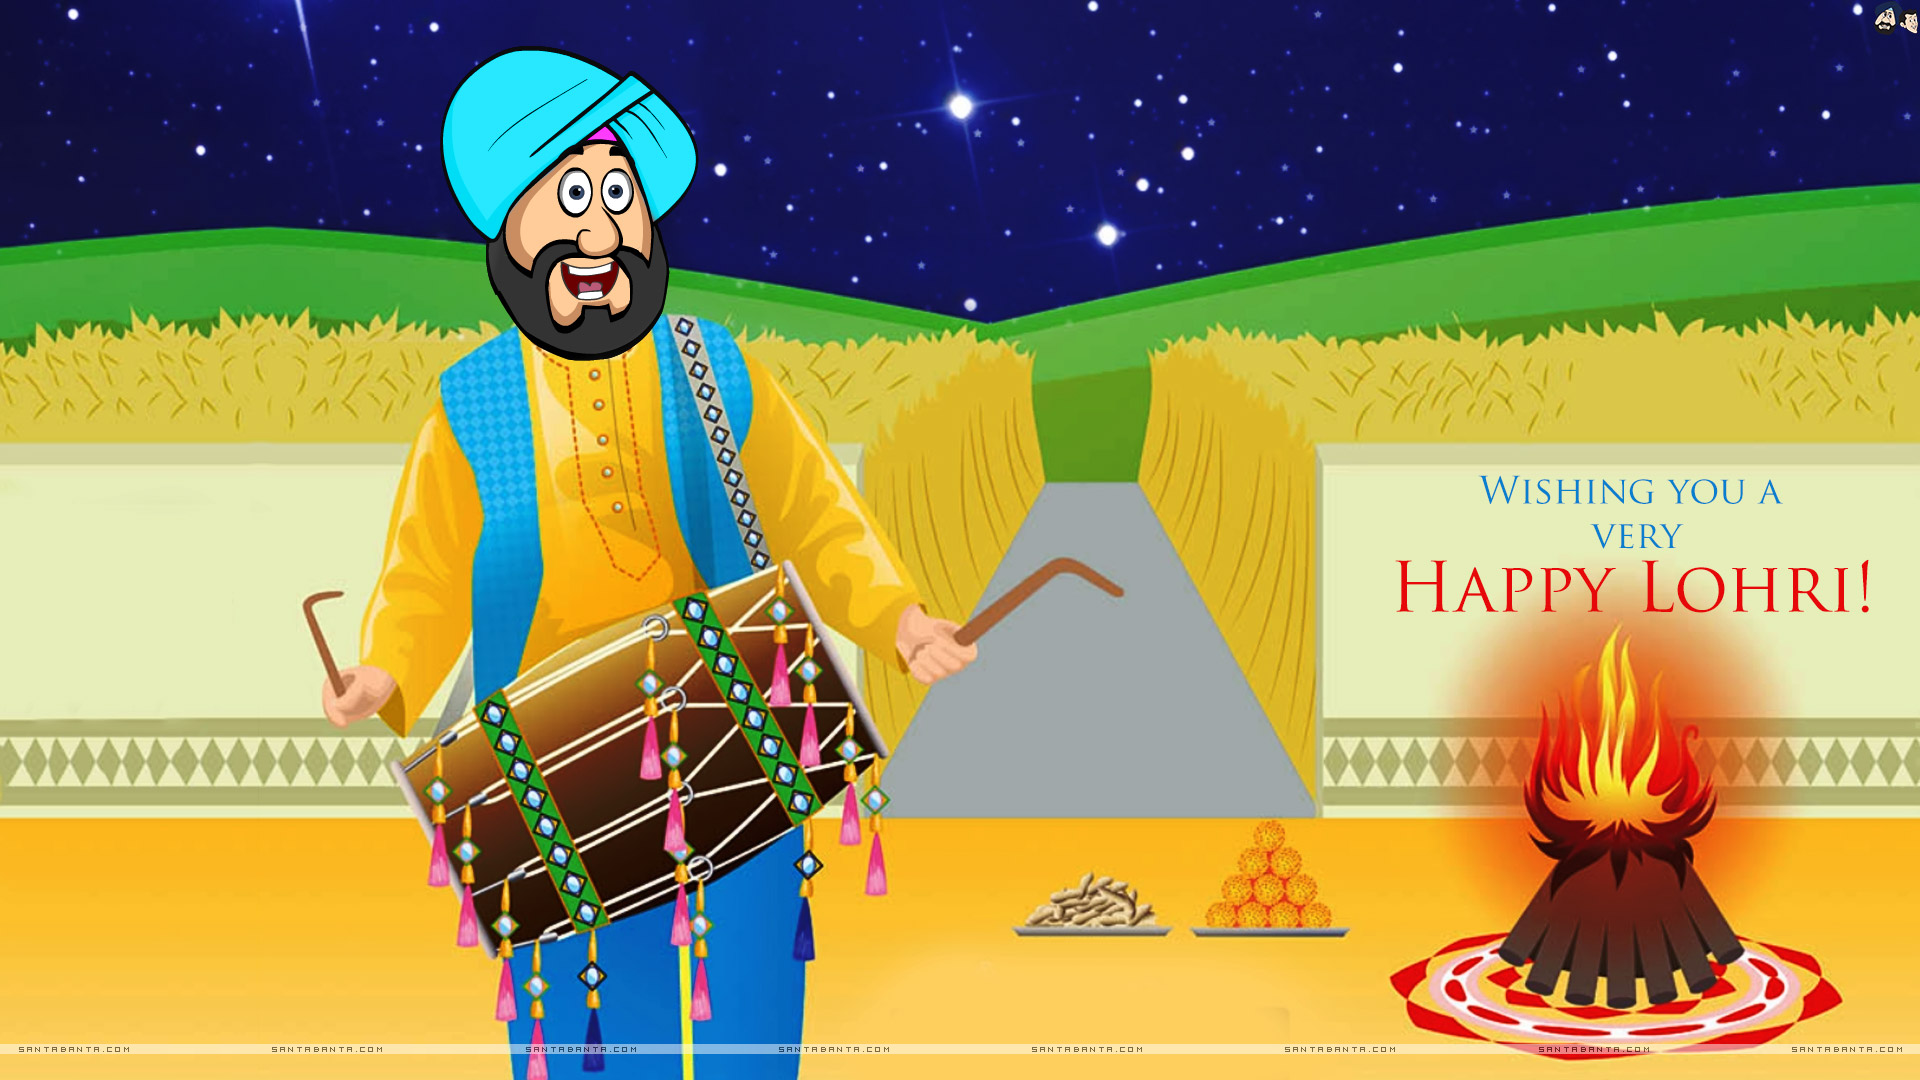 Lohri Wishes Hd Images Download